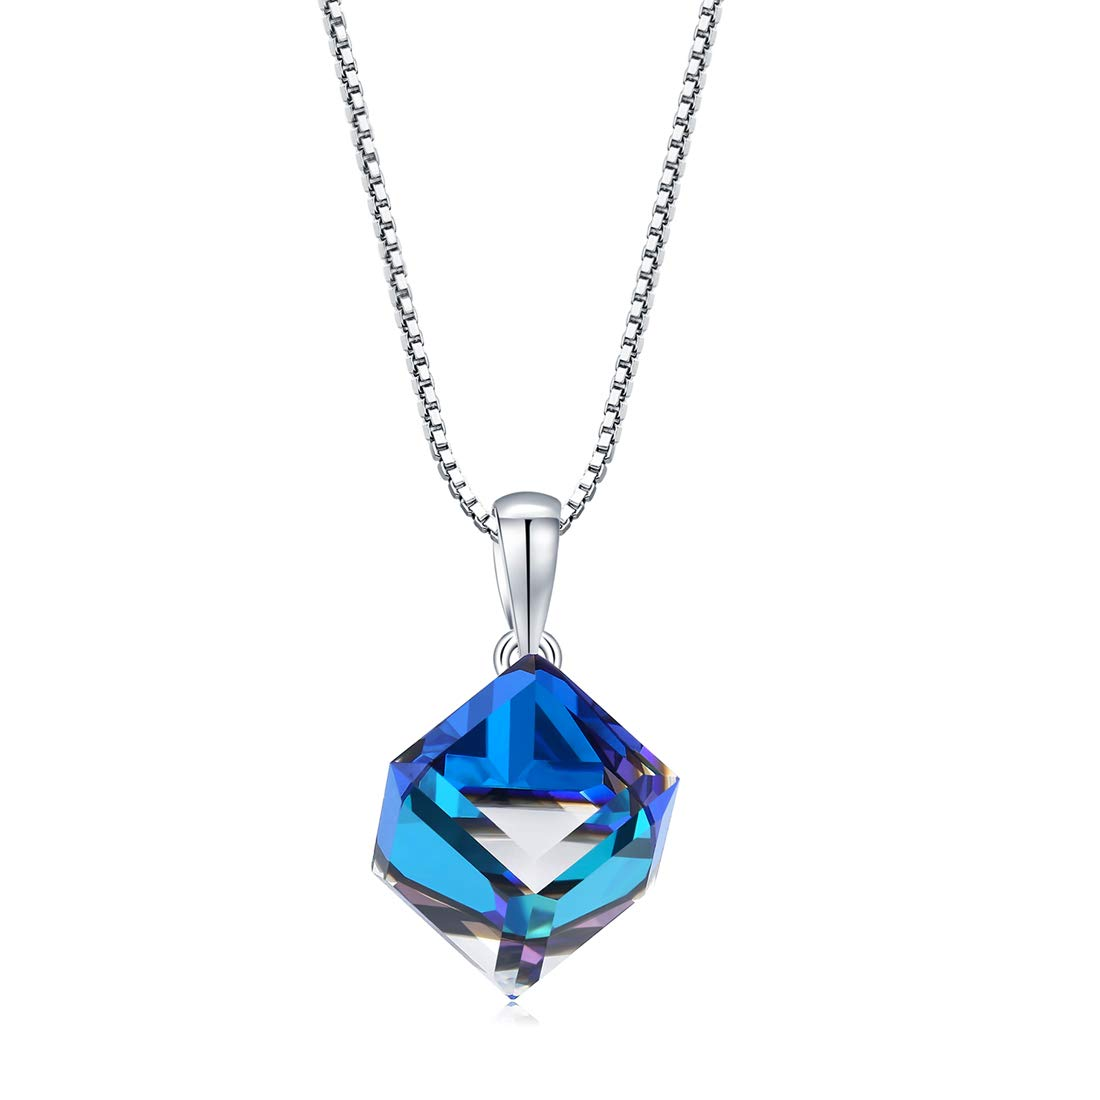 """iCKER Pendant Necklace for Women Girls 925 Sterling Silver .8MM Box Chain - Italian Necklace Chain, 16"""" Changeable Color Dangle Necklace Fine Jewelry for Women, Anniversary, Birthday"""